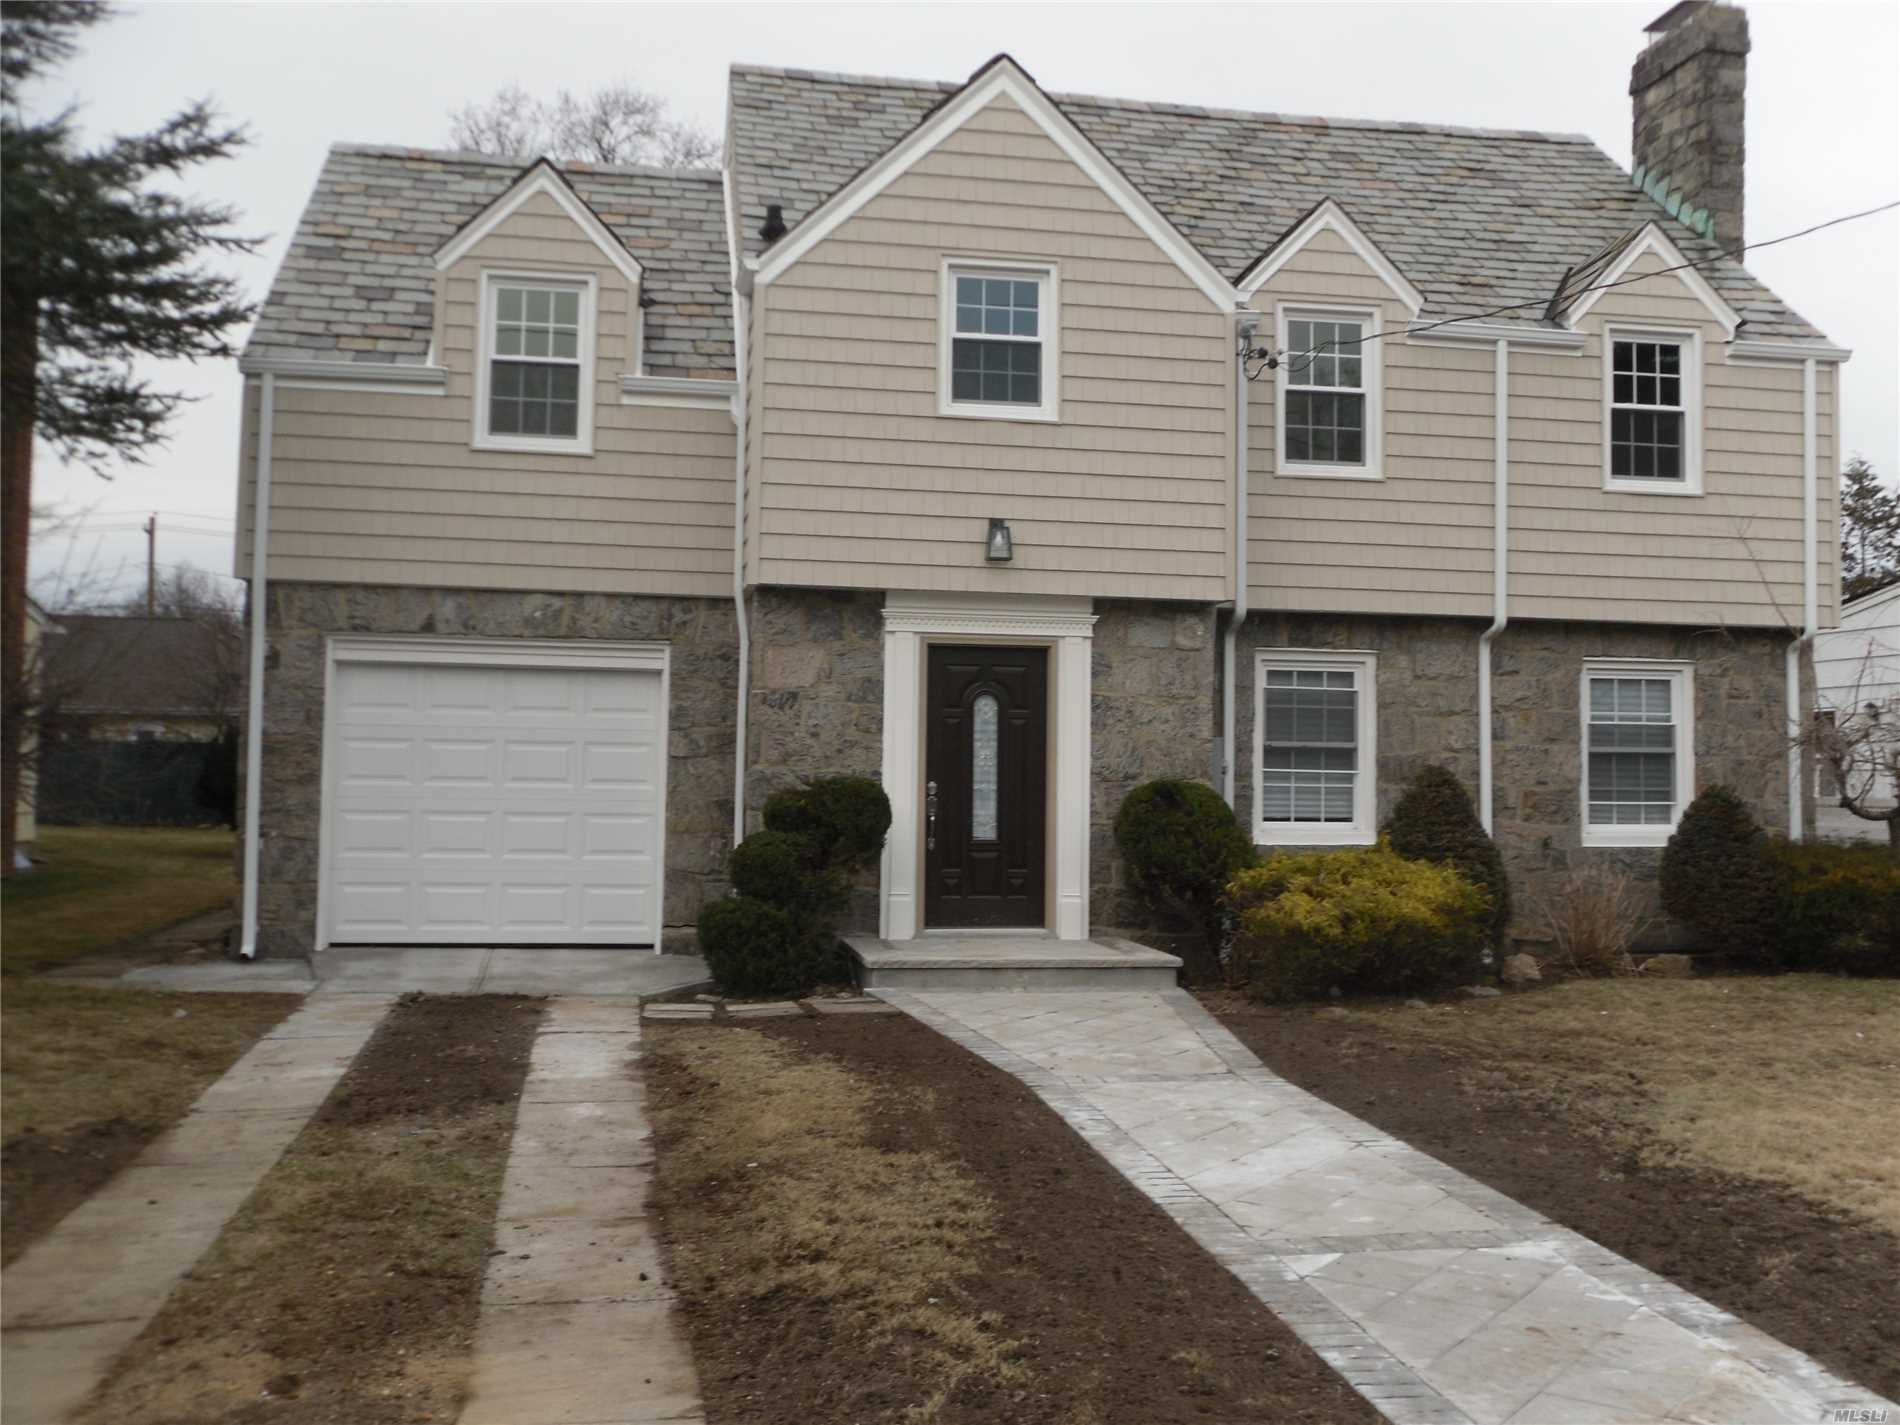 Newly Renovated House, New Kitchen, New Bathrooms, New Heating System, New Central Air Conditioning, 200 Amp Electric, Led Lights Throughout, New Appliances, New Windows And Doors, New Siding, New Gutters, New Brick Patio, New Brick Walkway, Hardwood Floors, And Much More